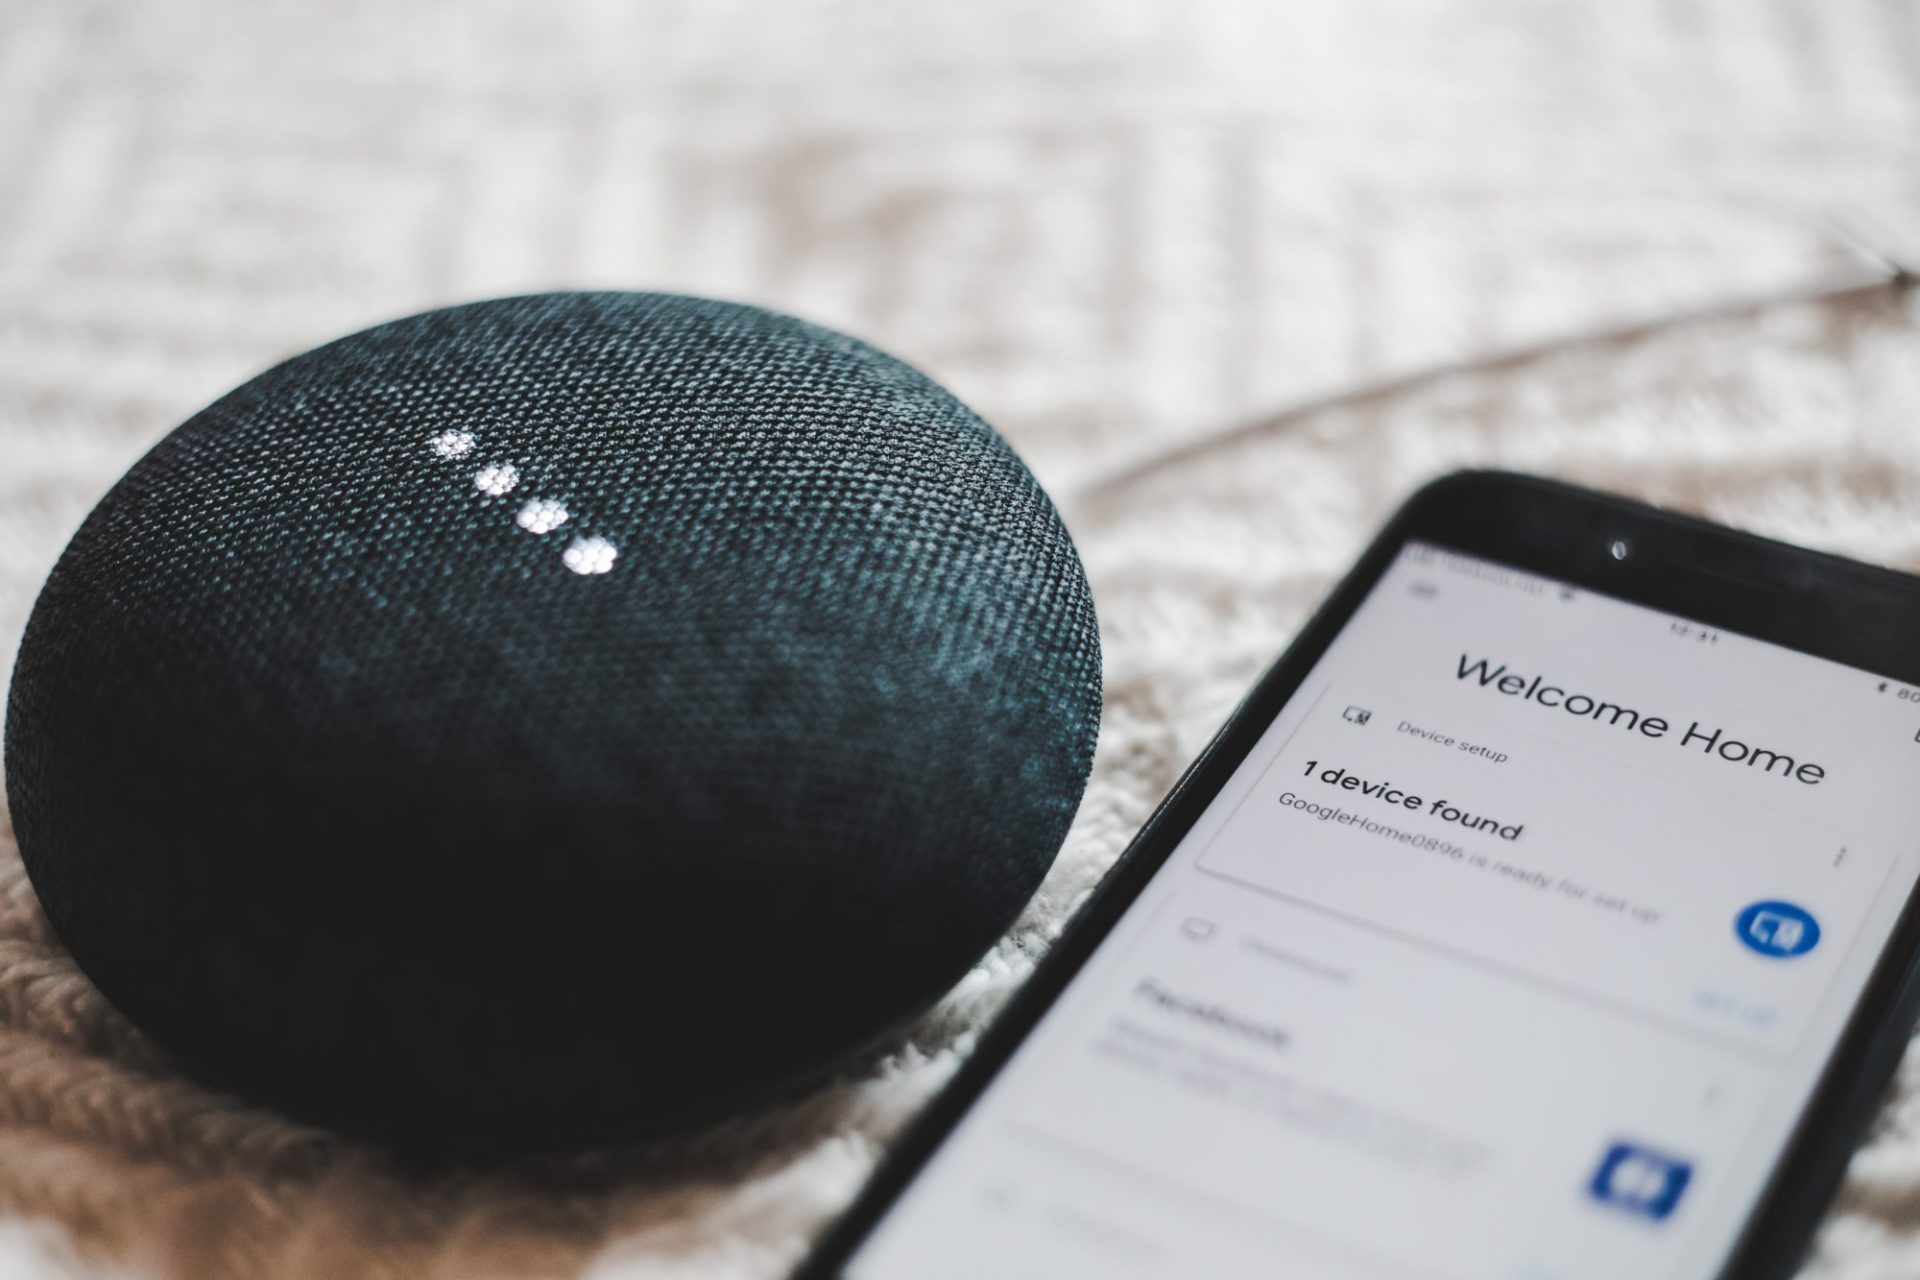 How to connect youtube with bluetooth speaker